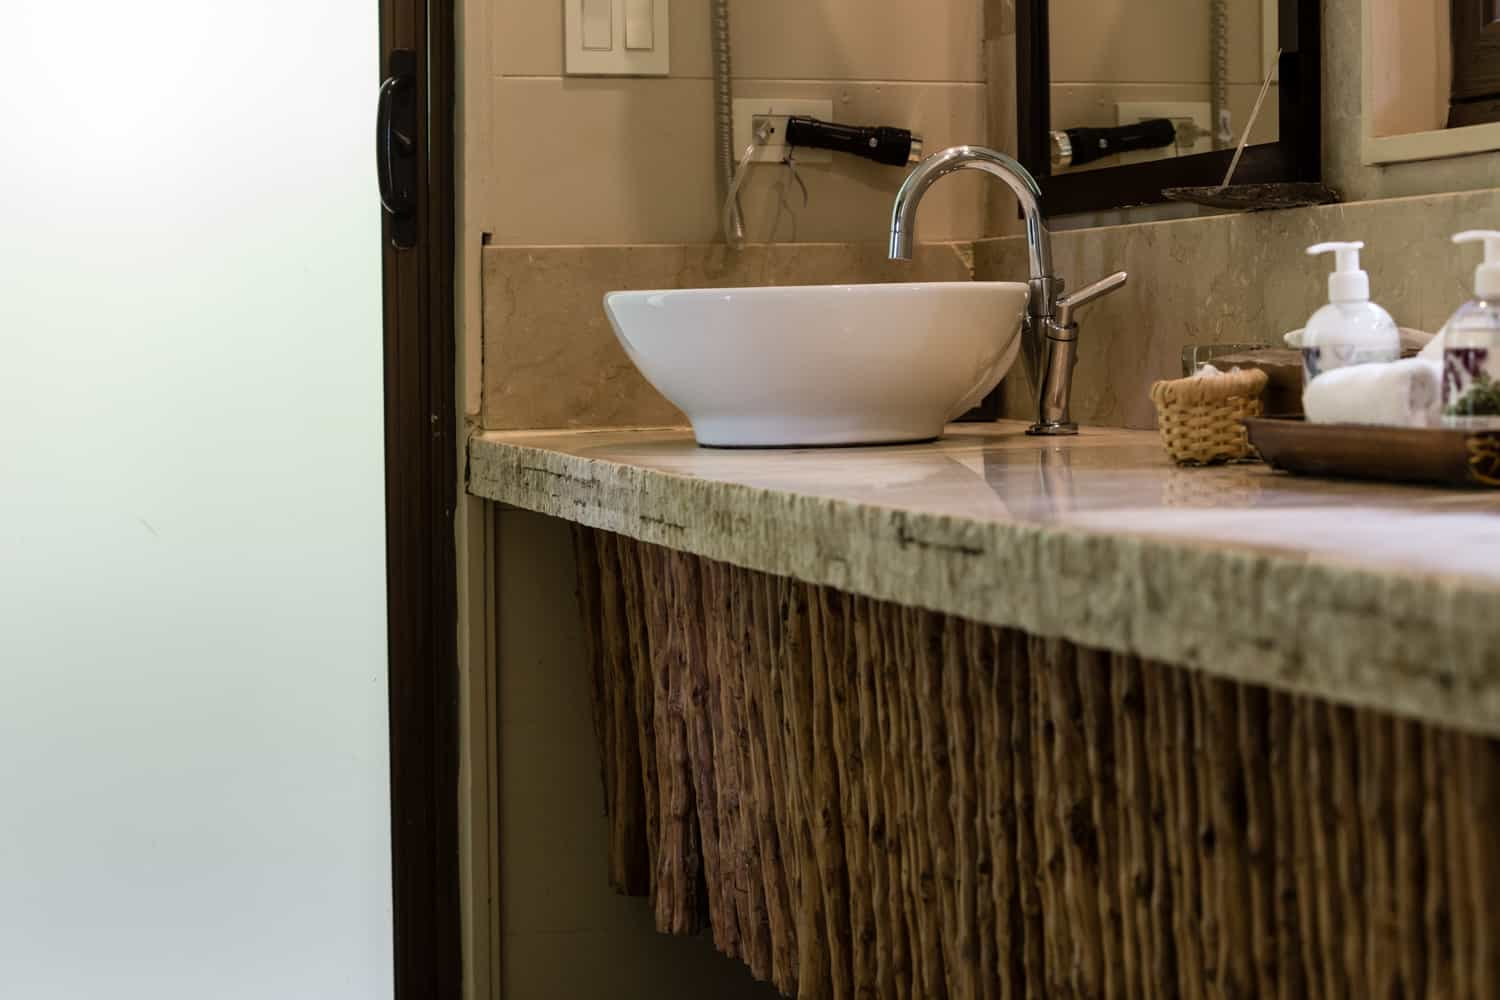 Lovely natural stone bathroom vanity with artful woodwork.